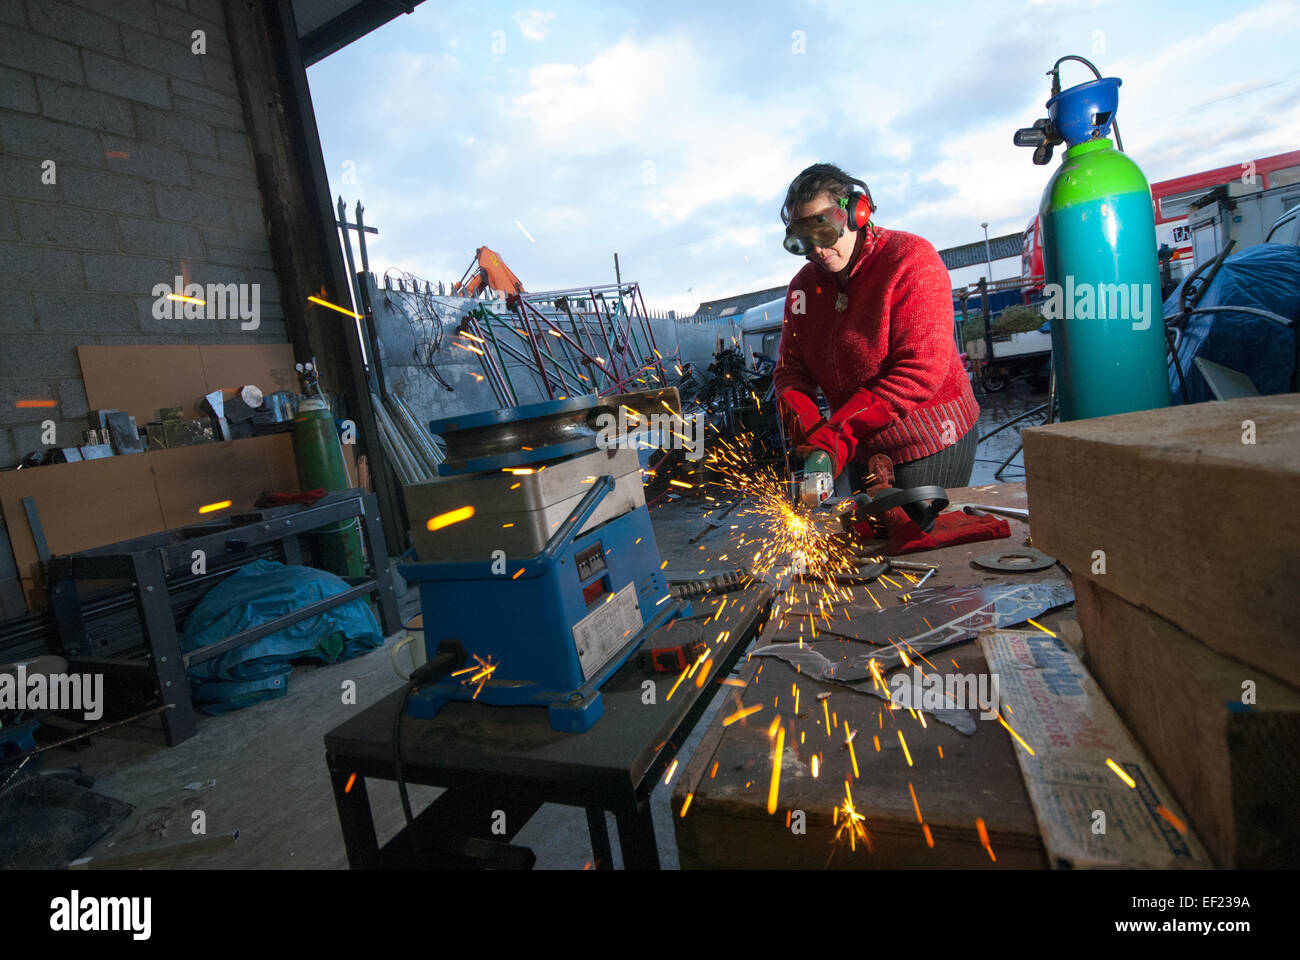 A female welder using an angle grinder - Stock Image